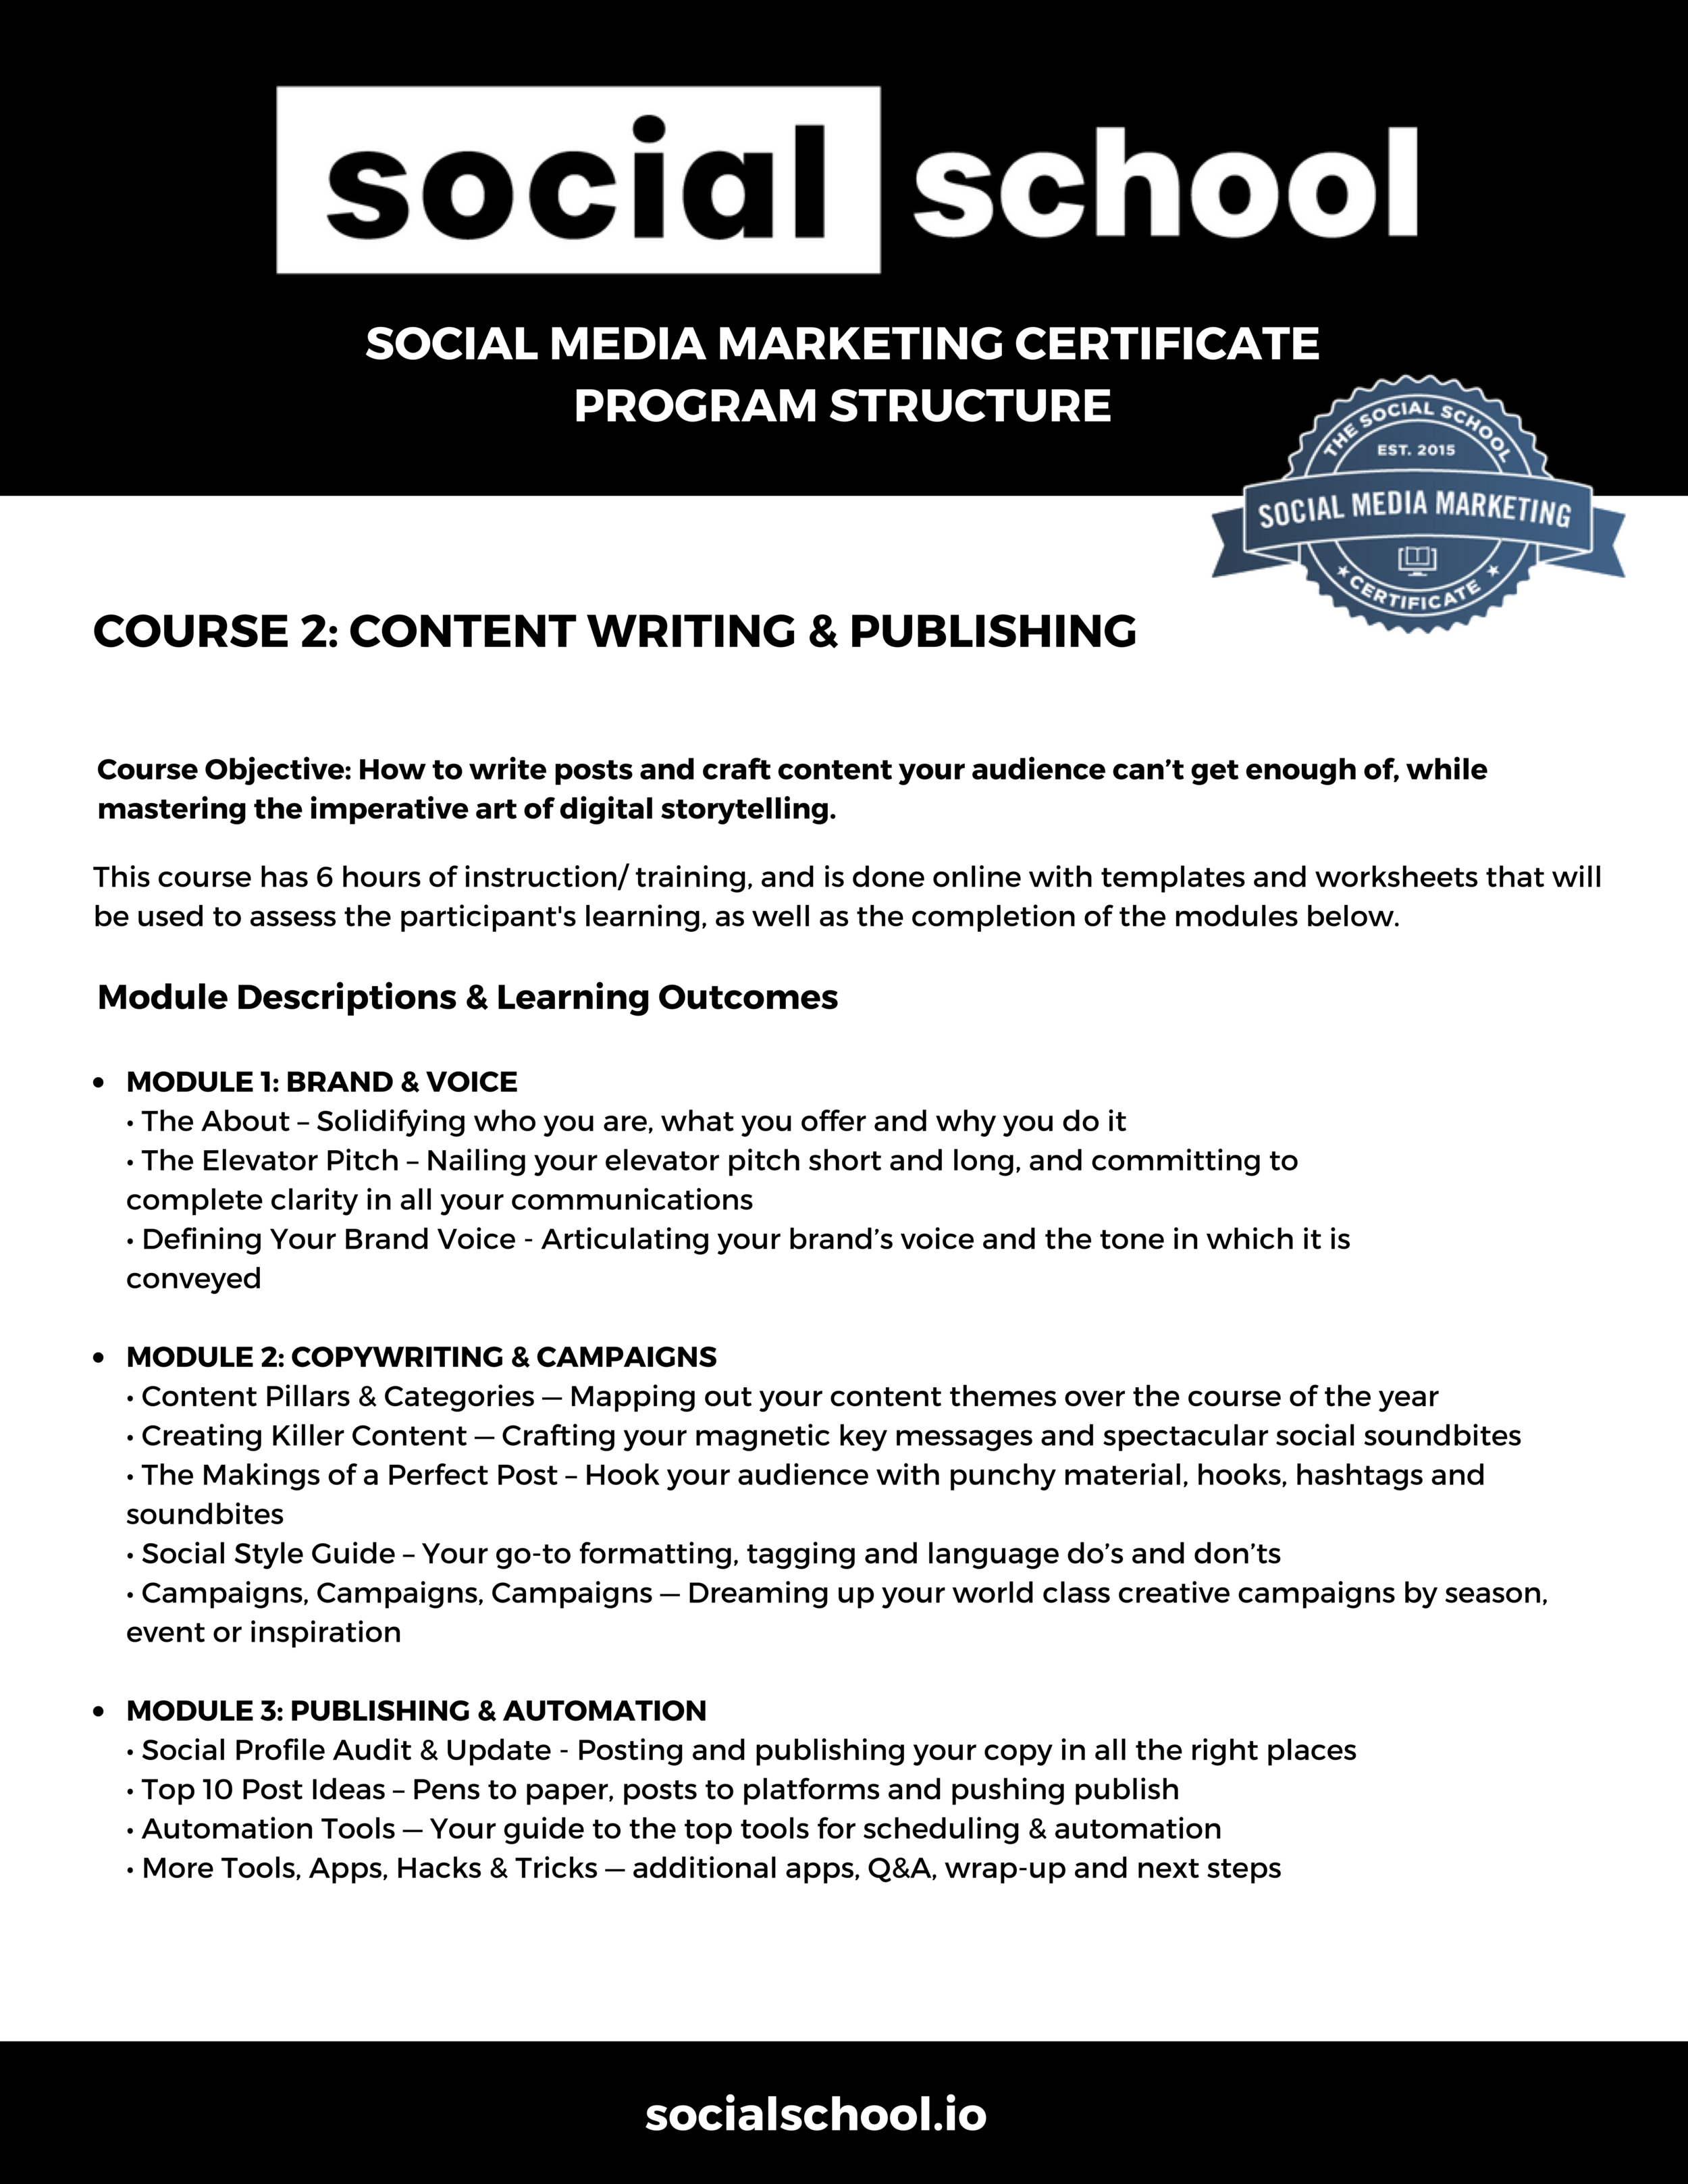 Click image to download course outline